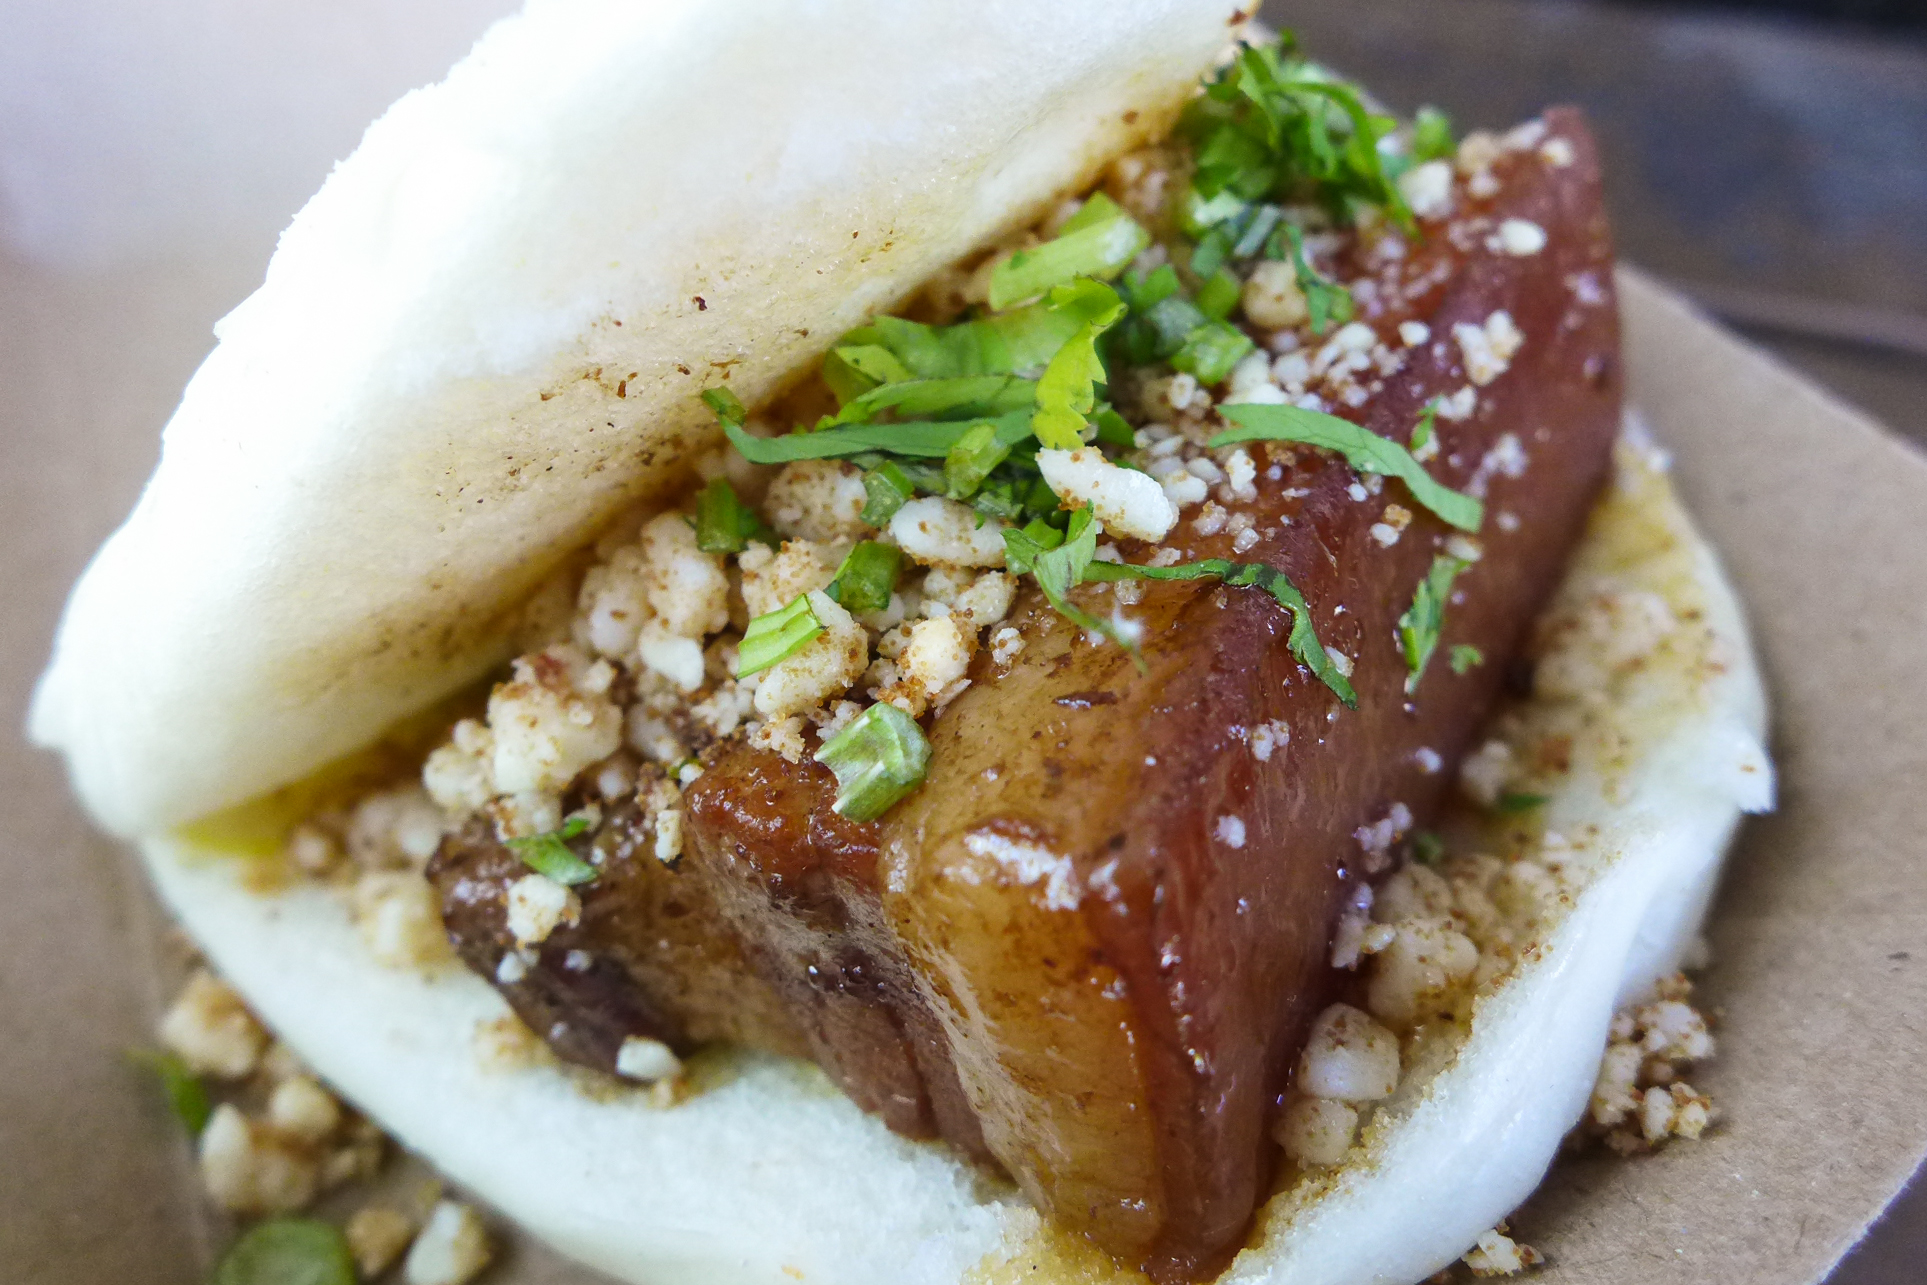 Chairman Bao®  - $4.05  Braised all natural Berkshire pork belly served with Haus Relish, crushed peanuts, Taiwanese red sugar, and cilantro.